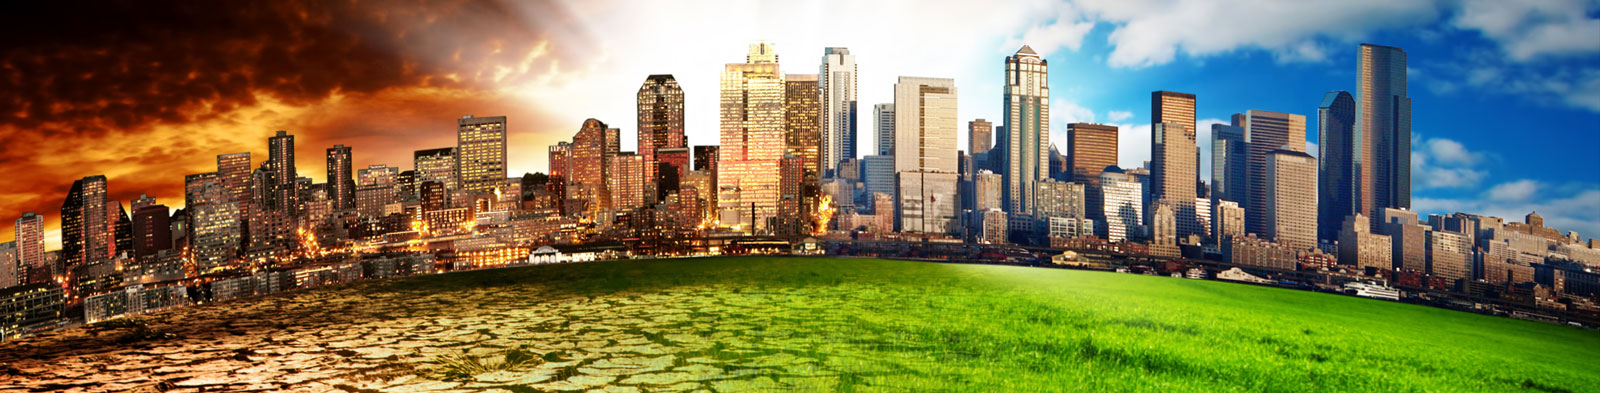 A blended image showing the effects of climate shange on a city skyline and bordering grasslands.